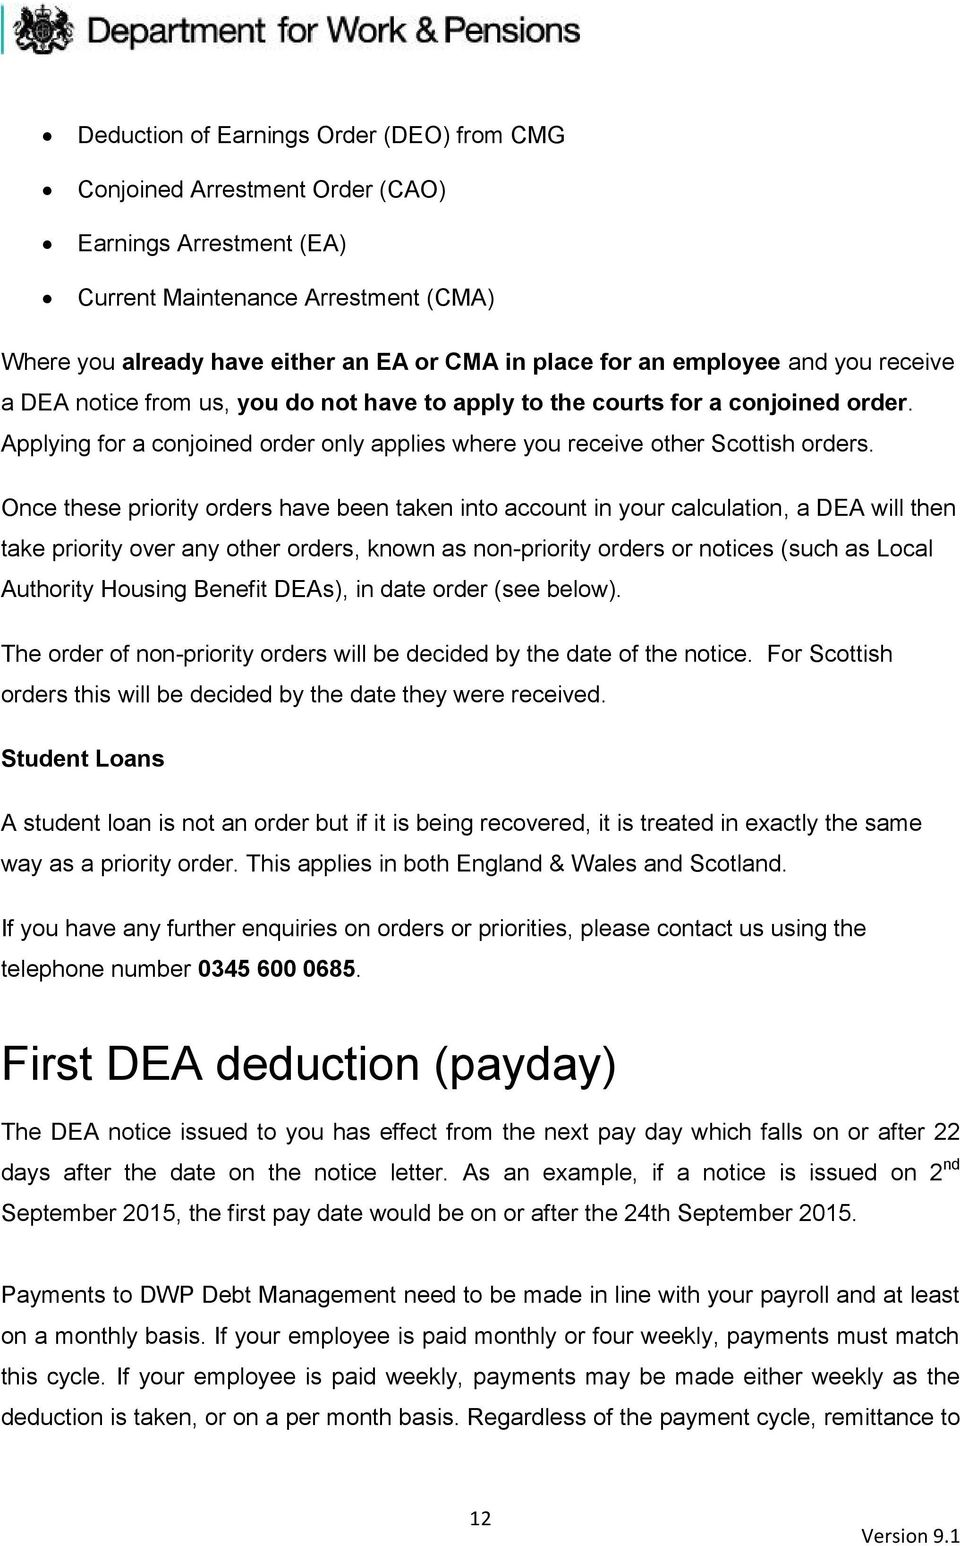 Once these priority orders have been taken into account in your calculation, a DEA will then take priority over any other orders, known as non-priority orders or notices (such as Local Authority